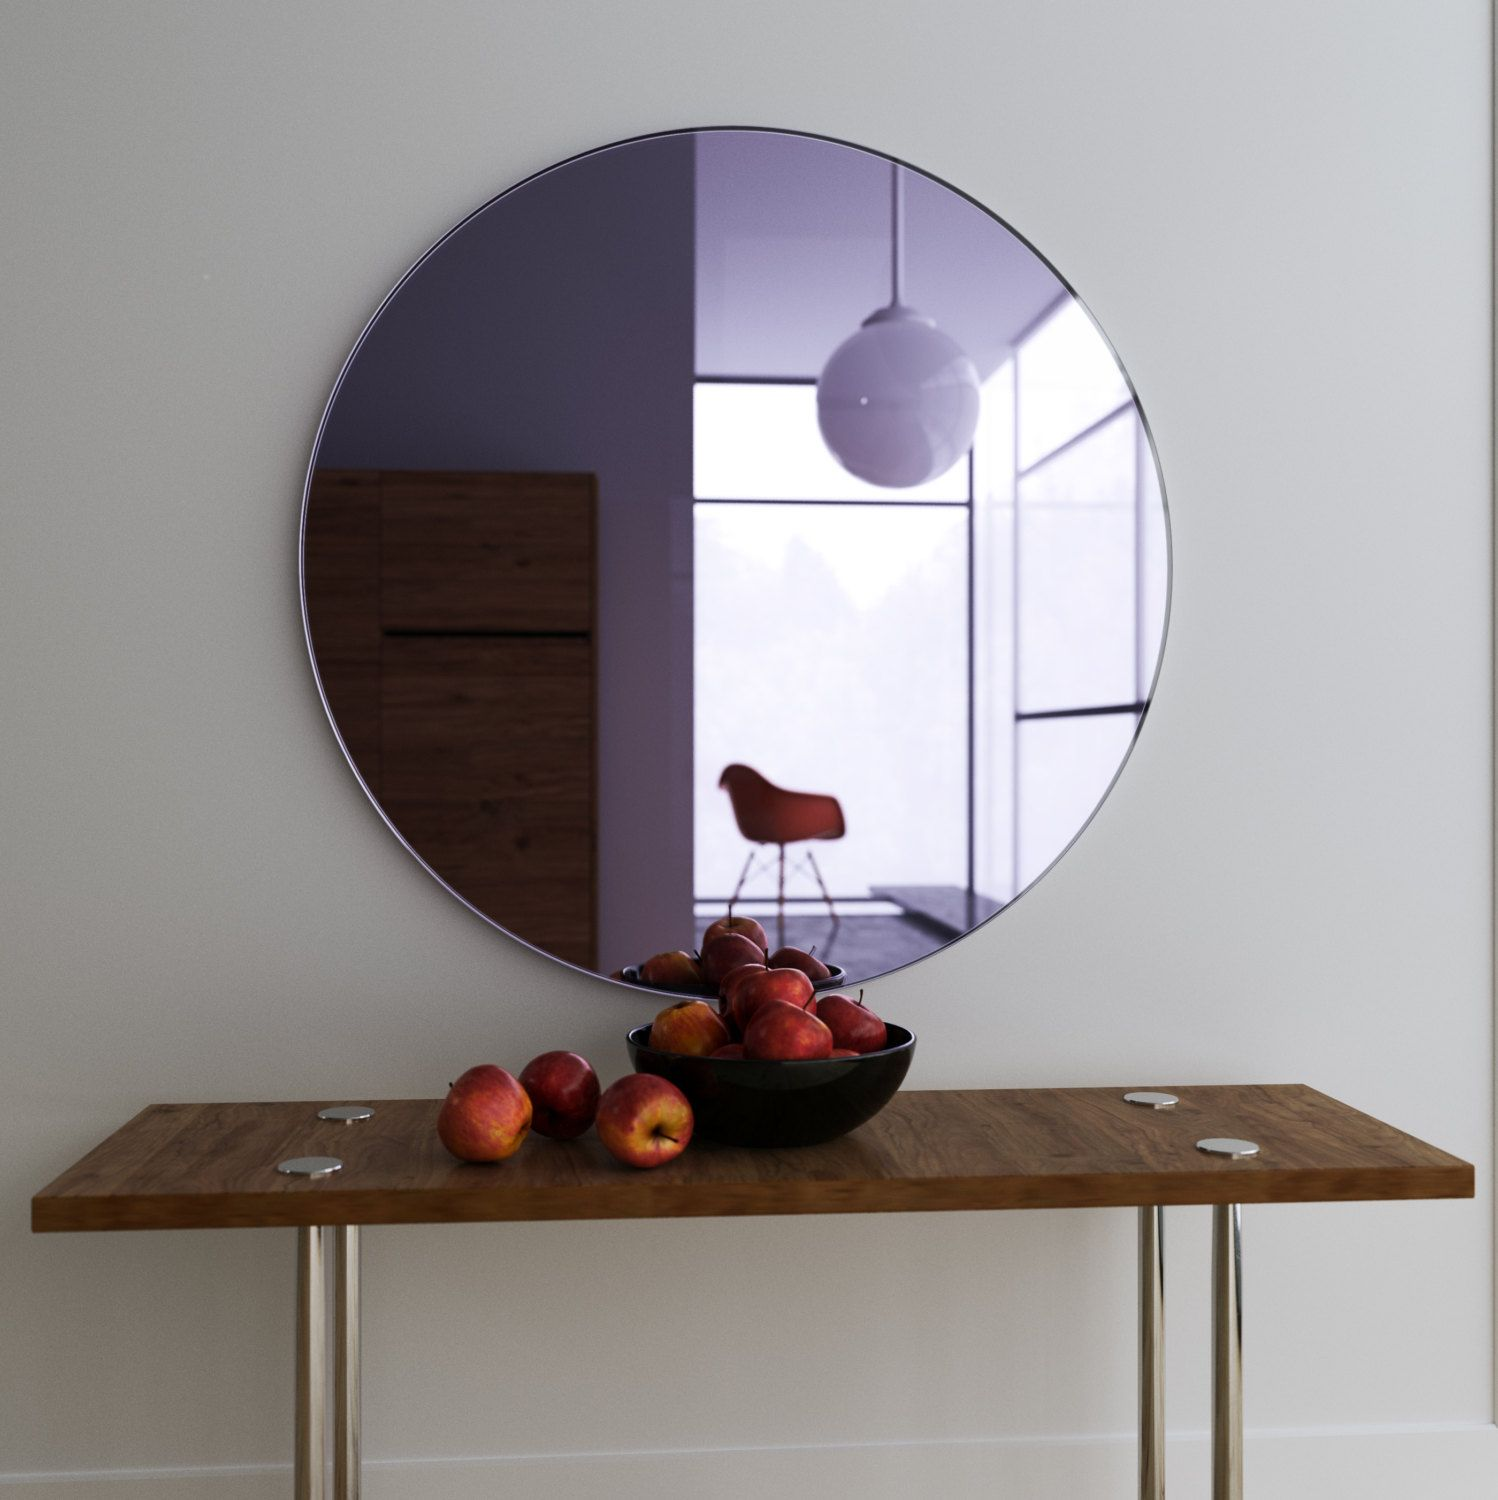 Purple wall mirror large hanging art deco mirror with handmade lavender glass and round chic shape